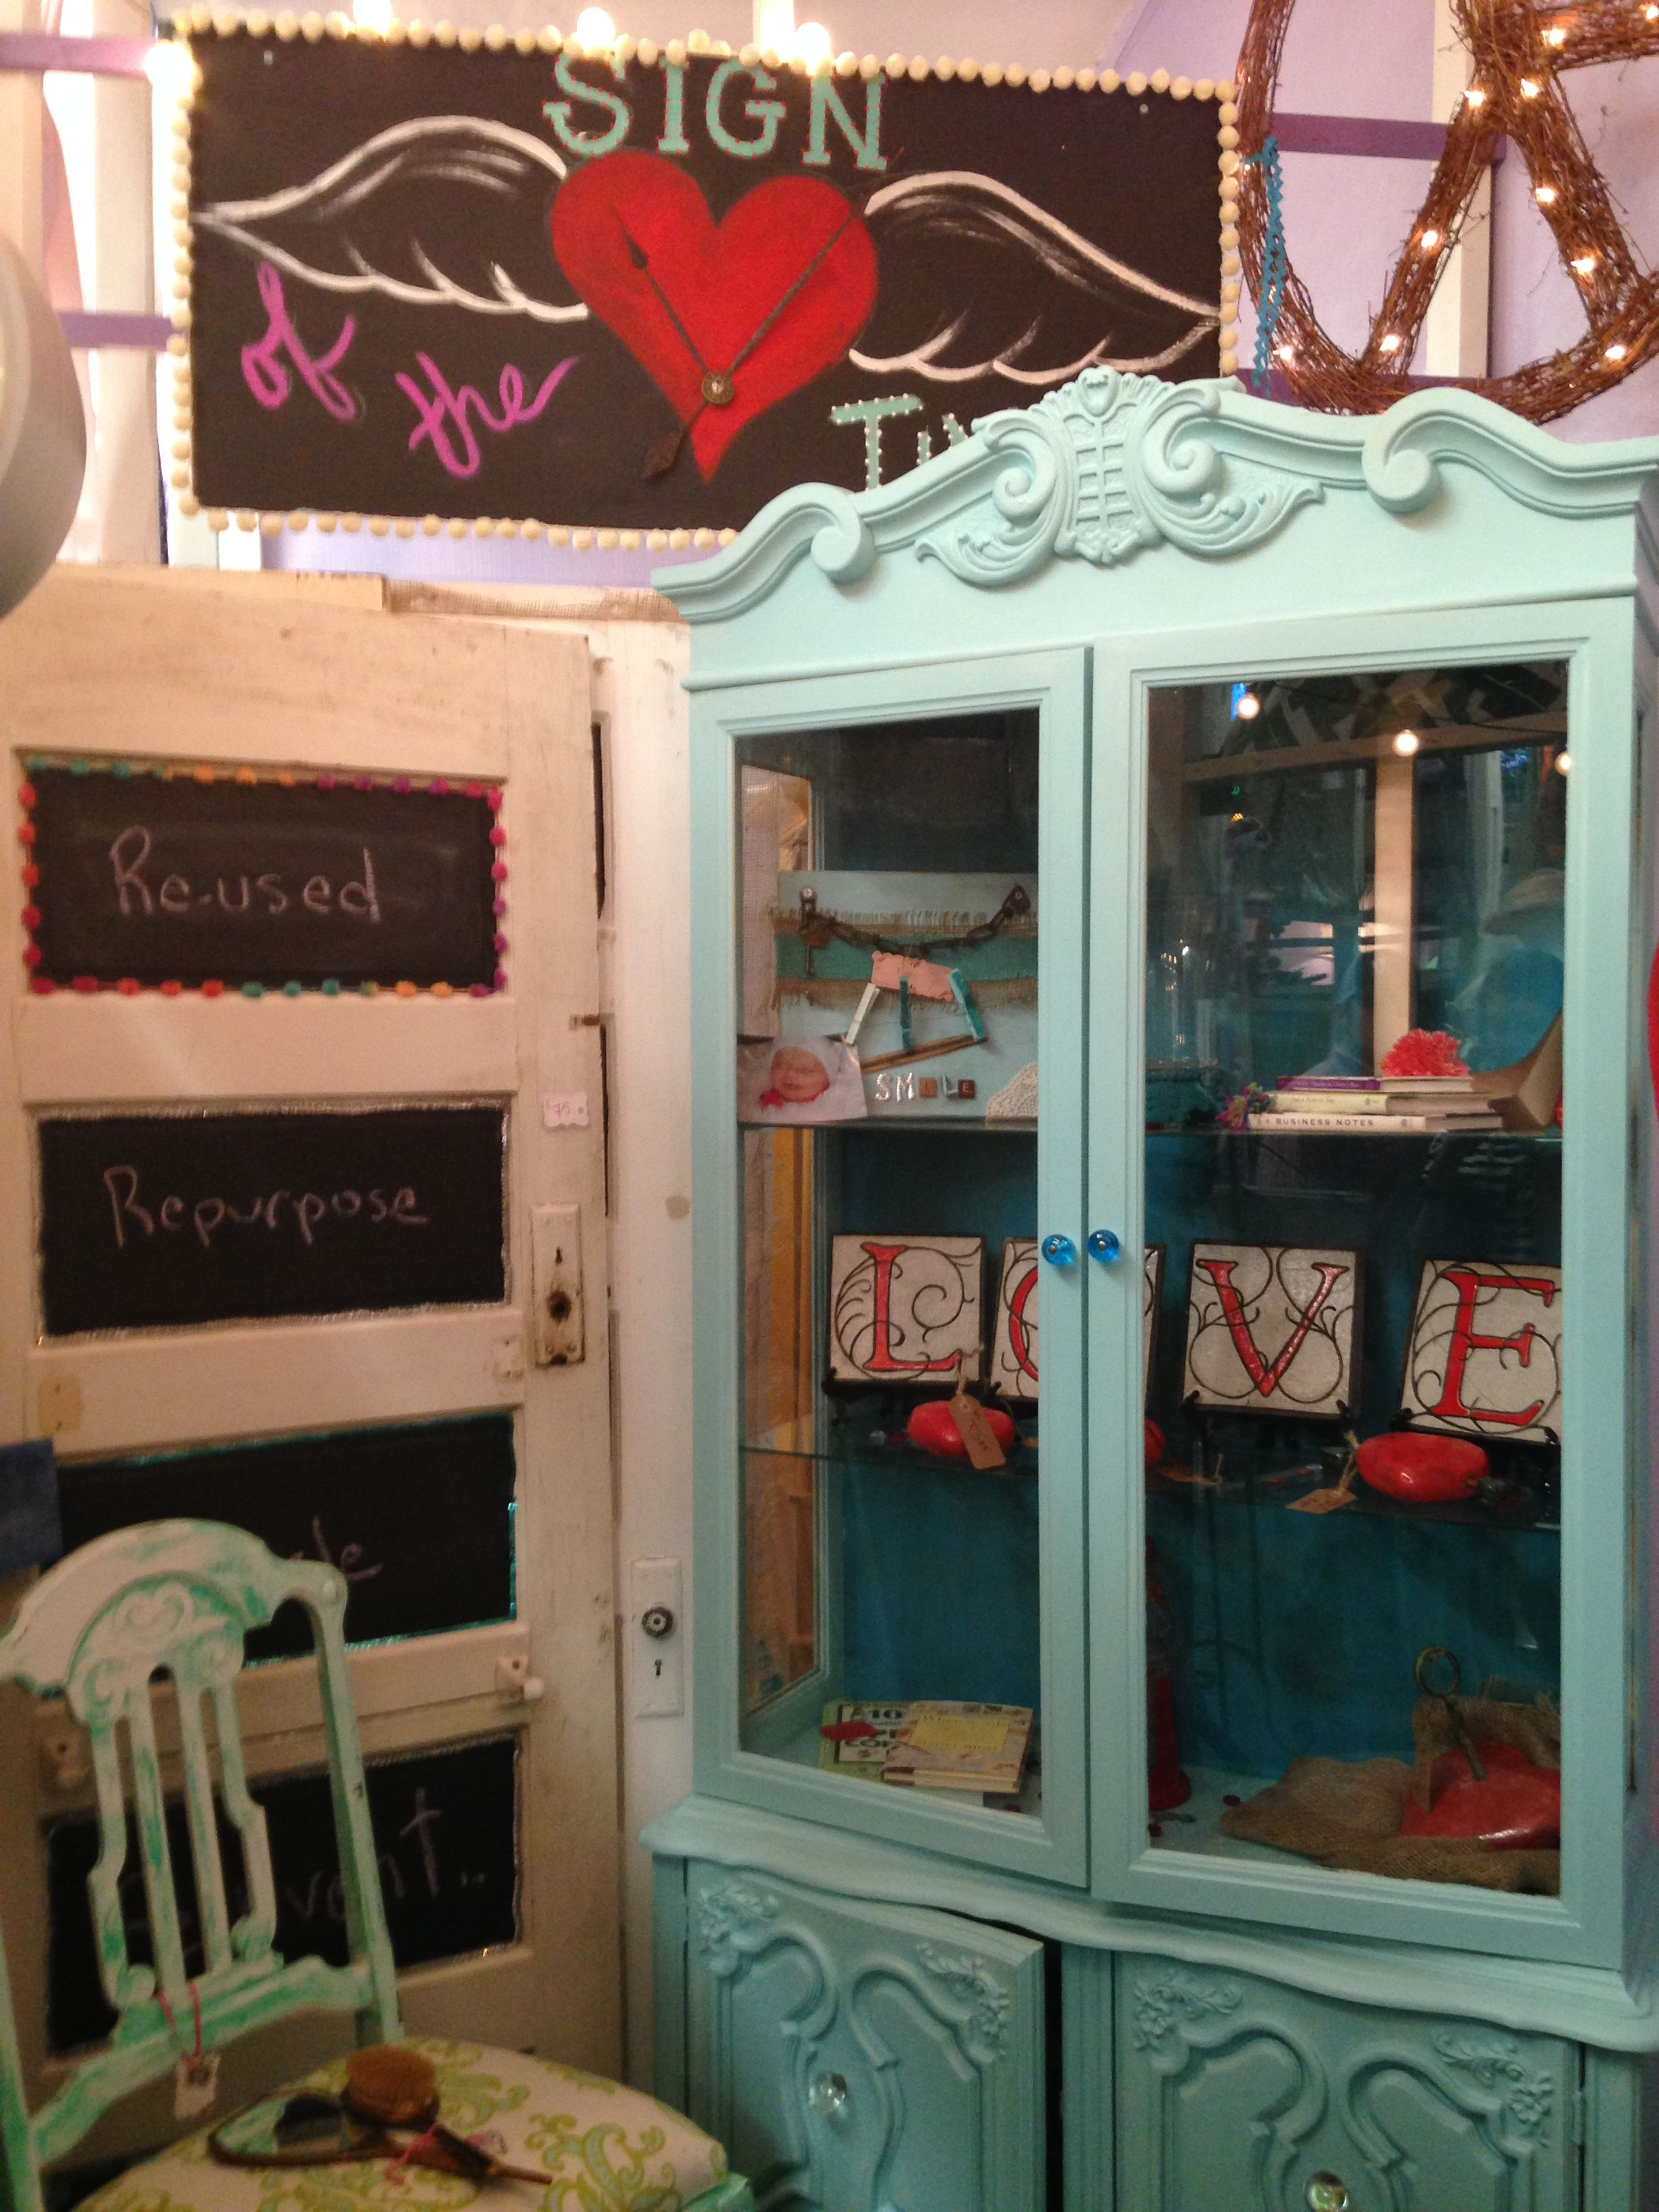 Have you been to Raven's Relics in Lakeland's Dixieland?